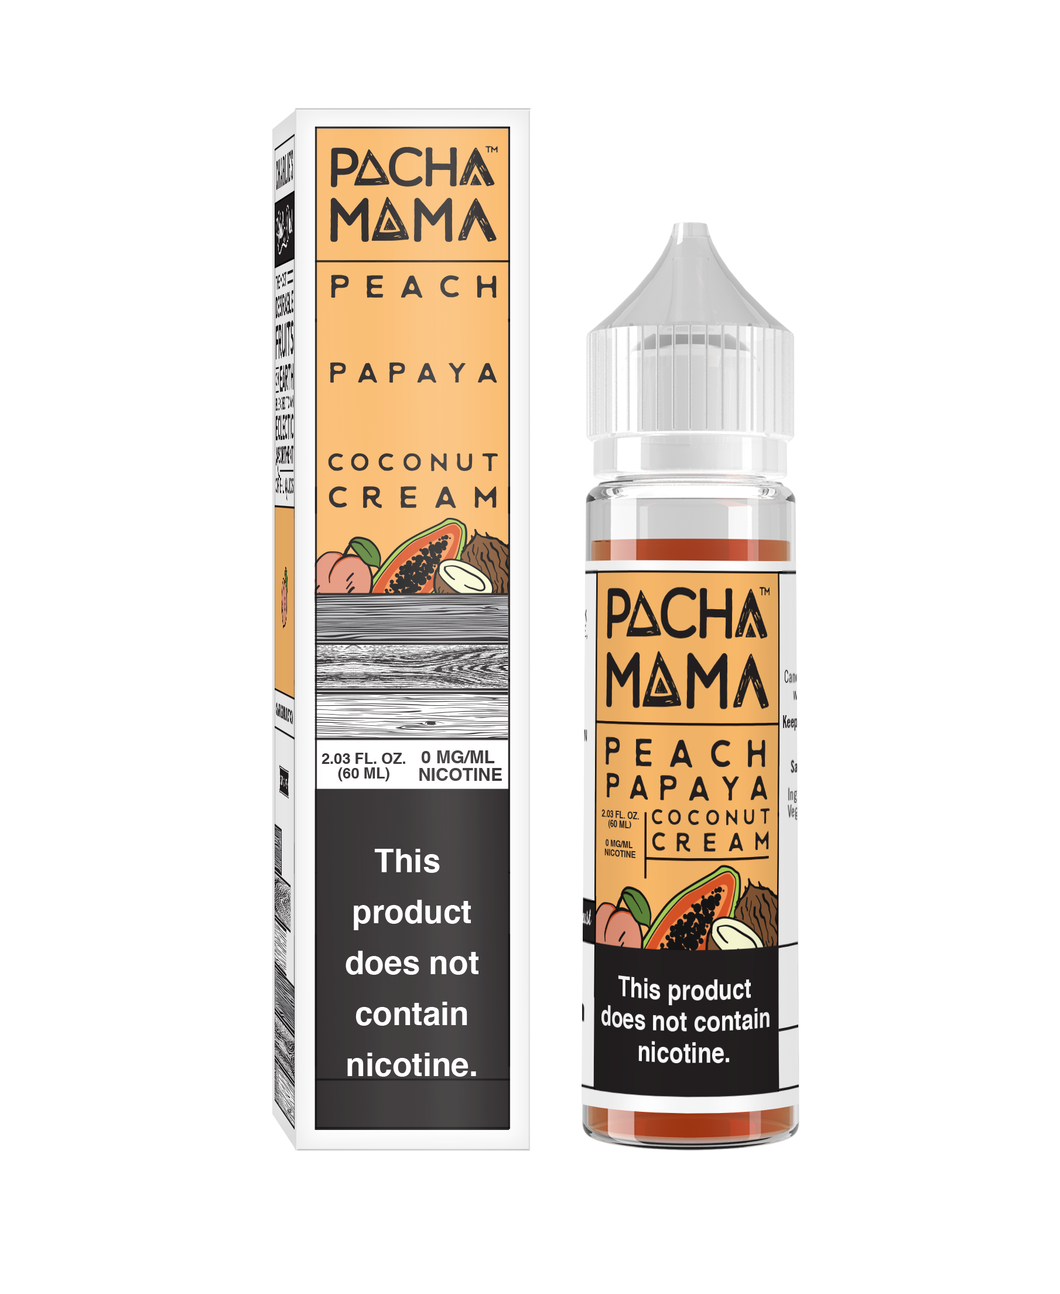 Pacha Mama: Peach Papaya Coconut Cream